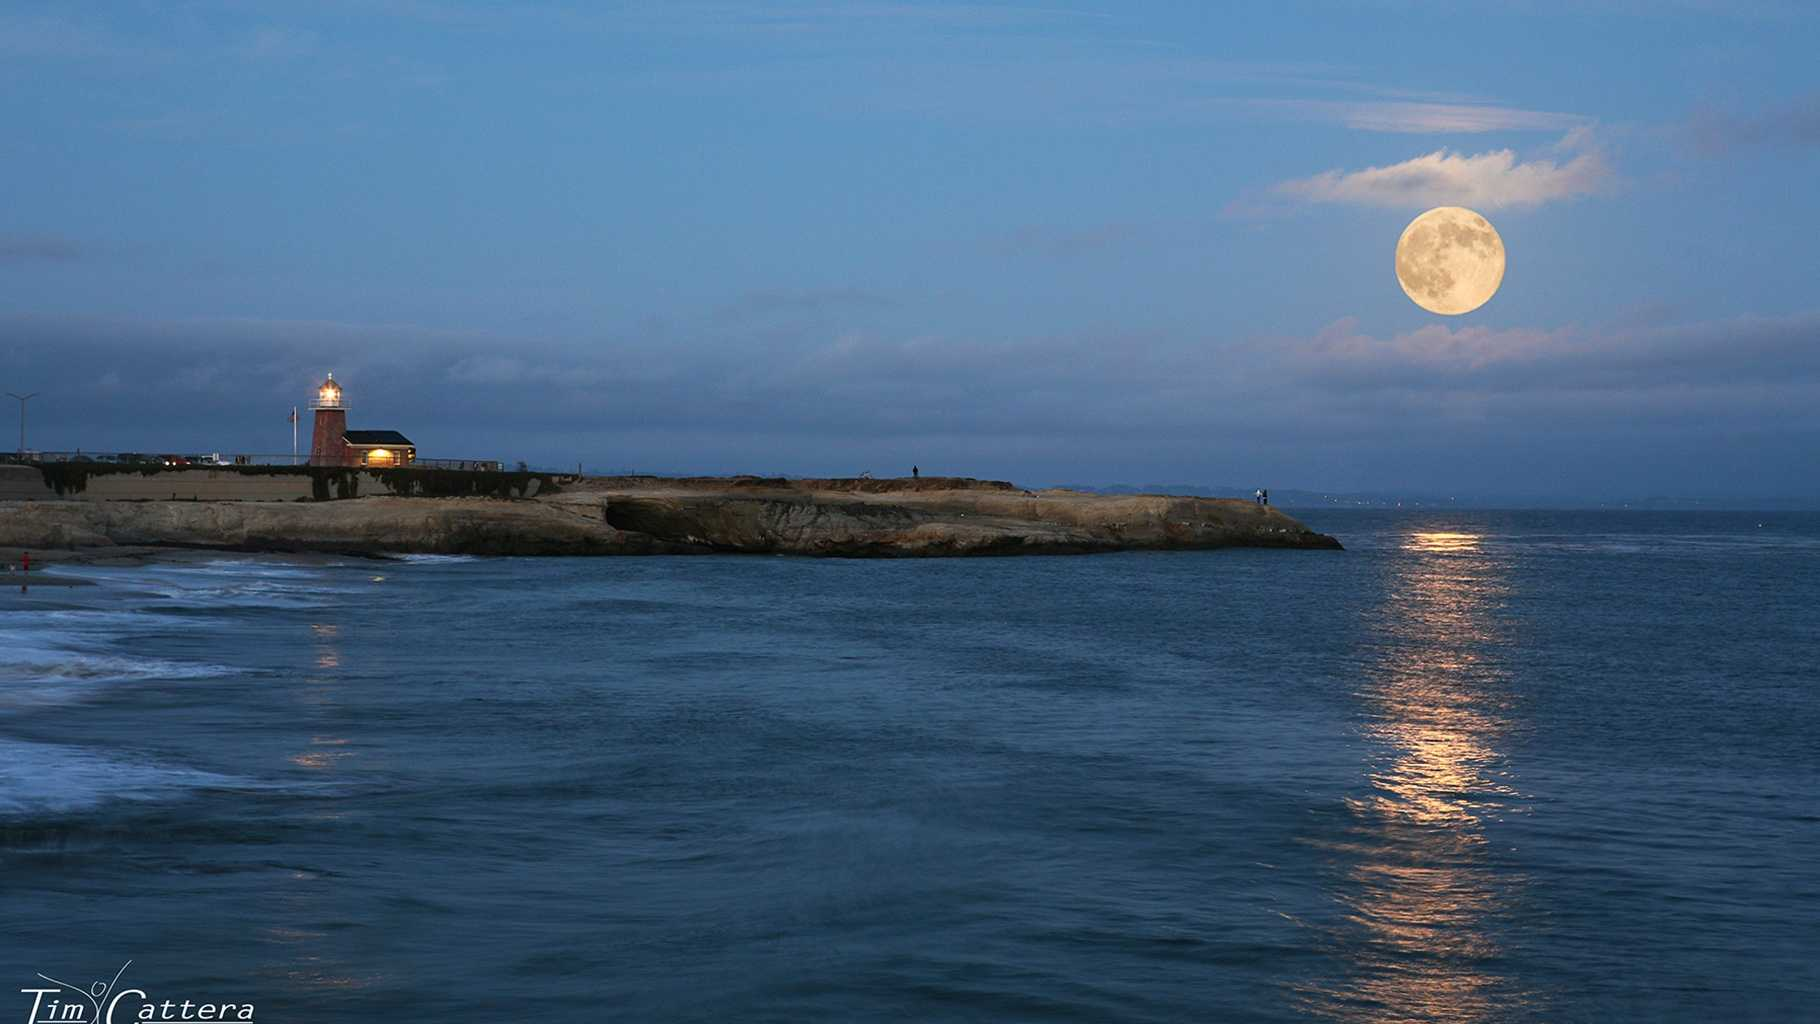 The supermoon is seen on Aug. 10, 2014 by the Santa Cruz lighthouse.